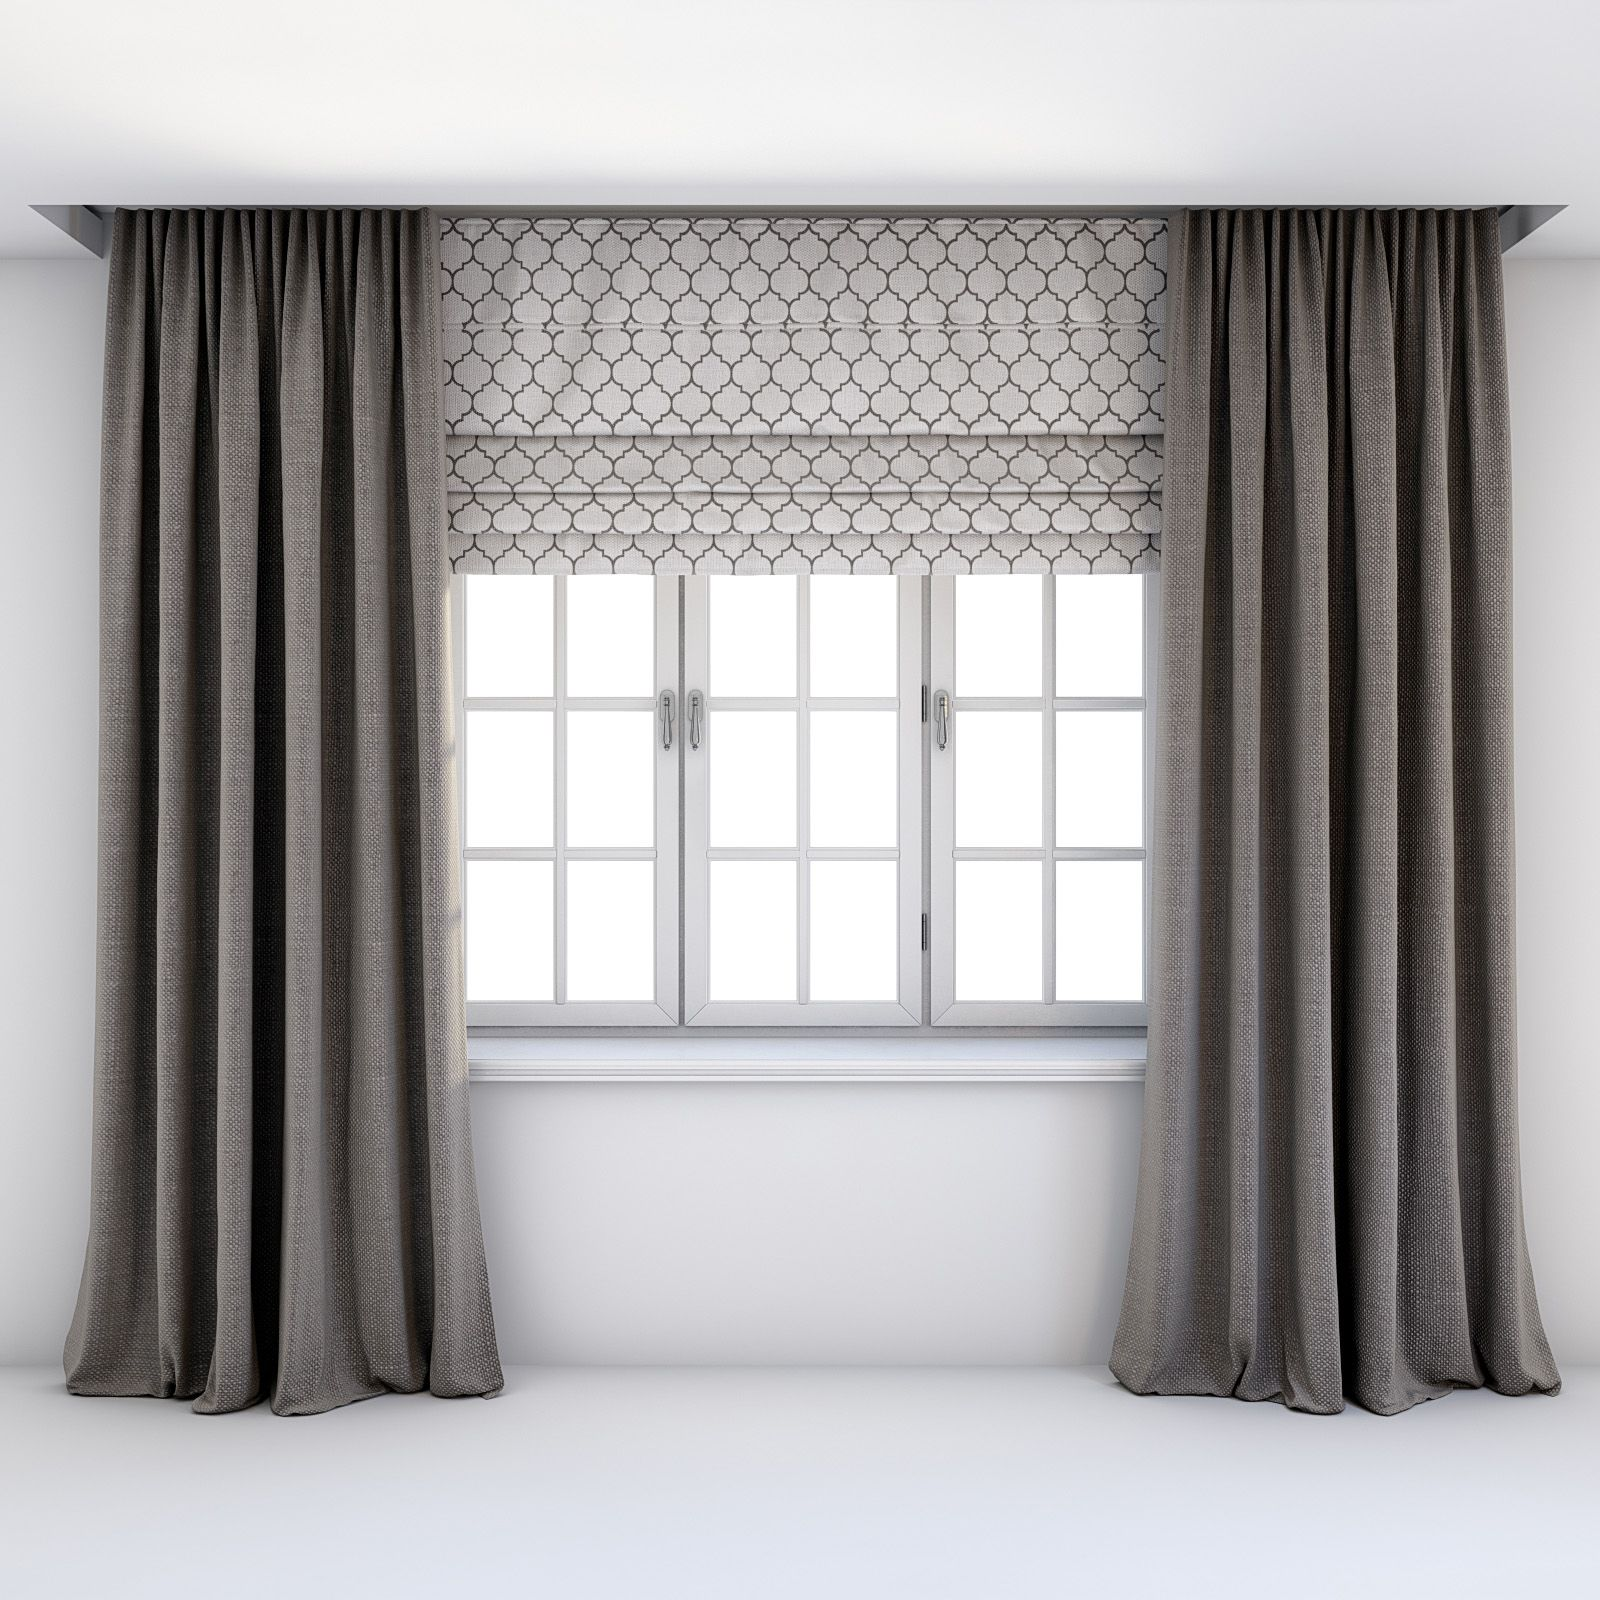 Straight Grey Brown Curtains Roman Blind Contemporary Curtains